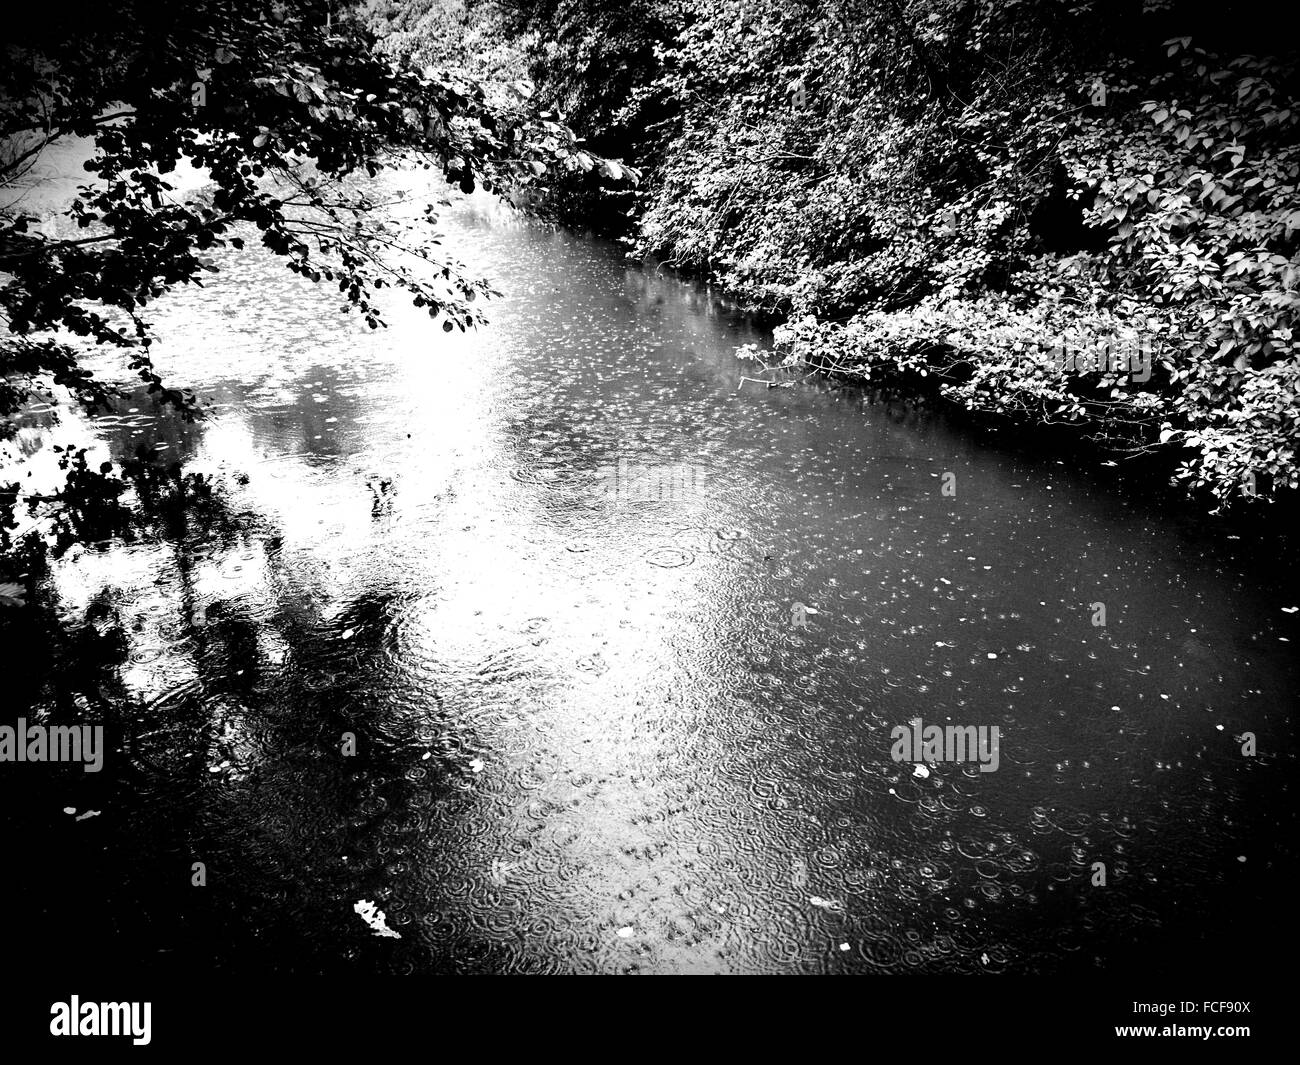 Stream By Plants In Forest During Monsoon - Stock Image